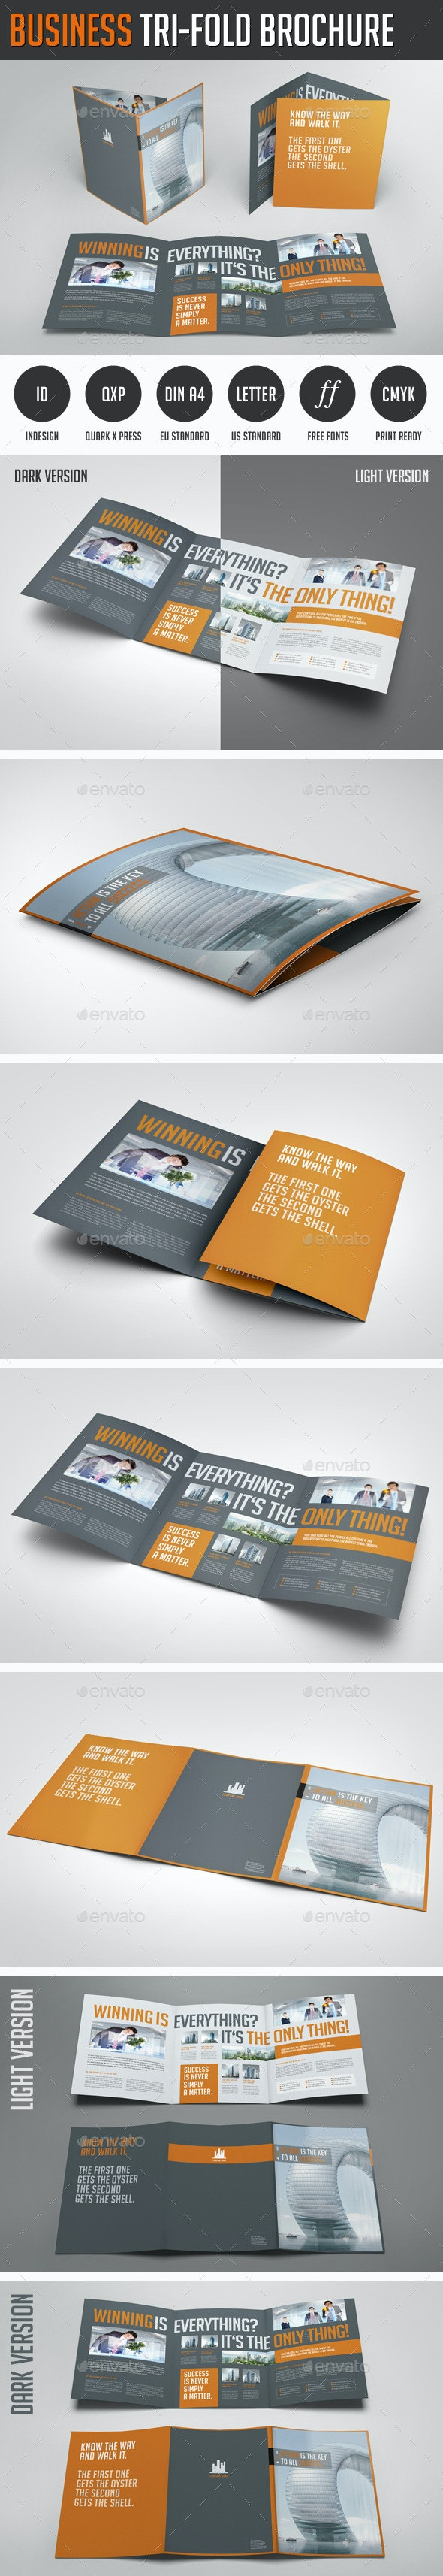 Business Image Trifold Brochure - Corporate Brochures